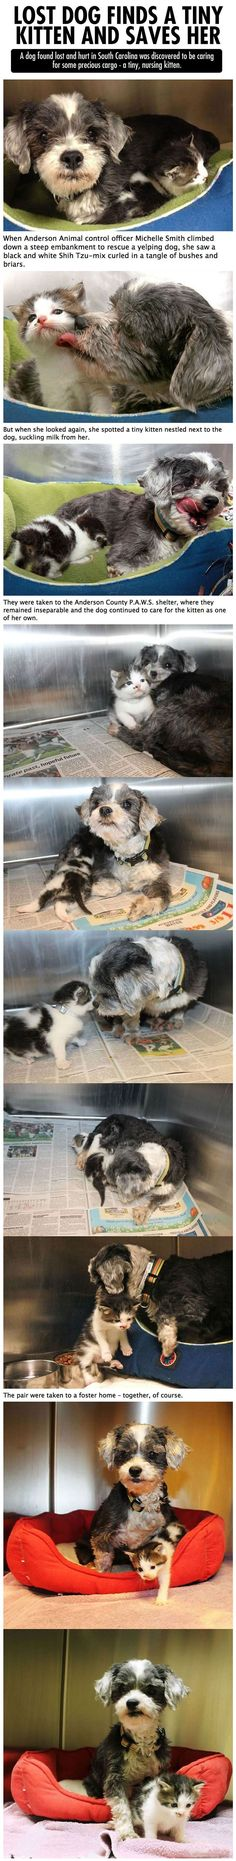 A dog found lost was discovered to be caring for a tiny, nursing kitten. #dogs #story